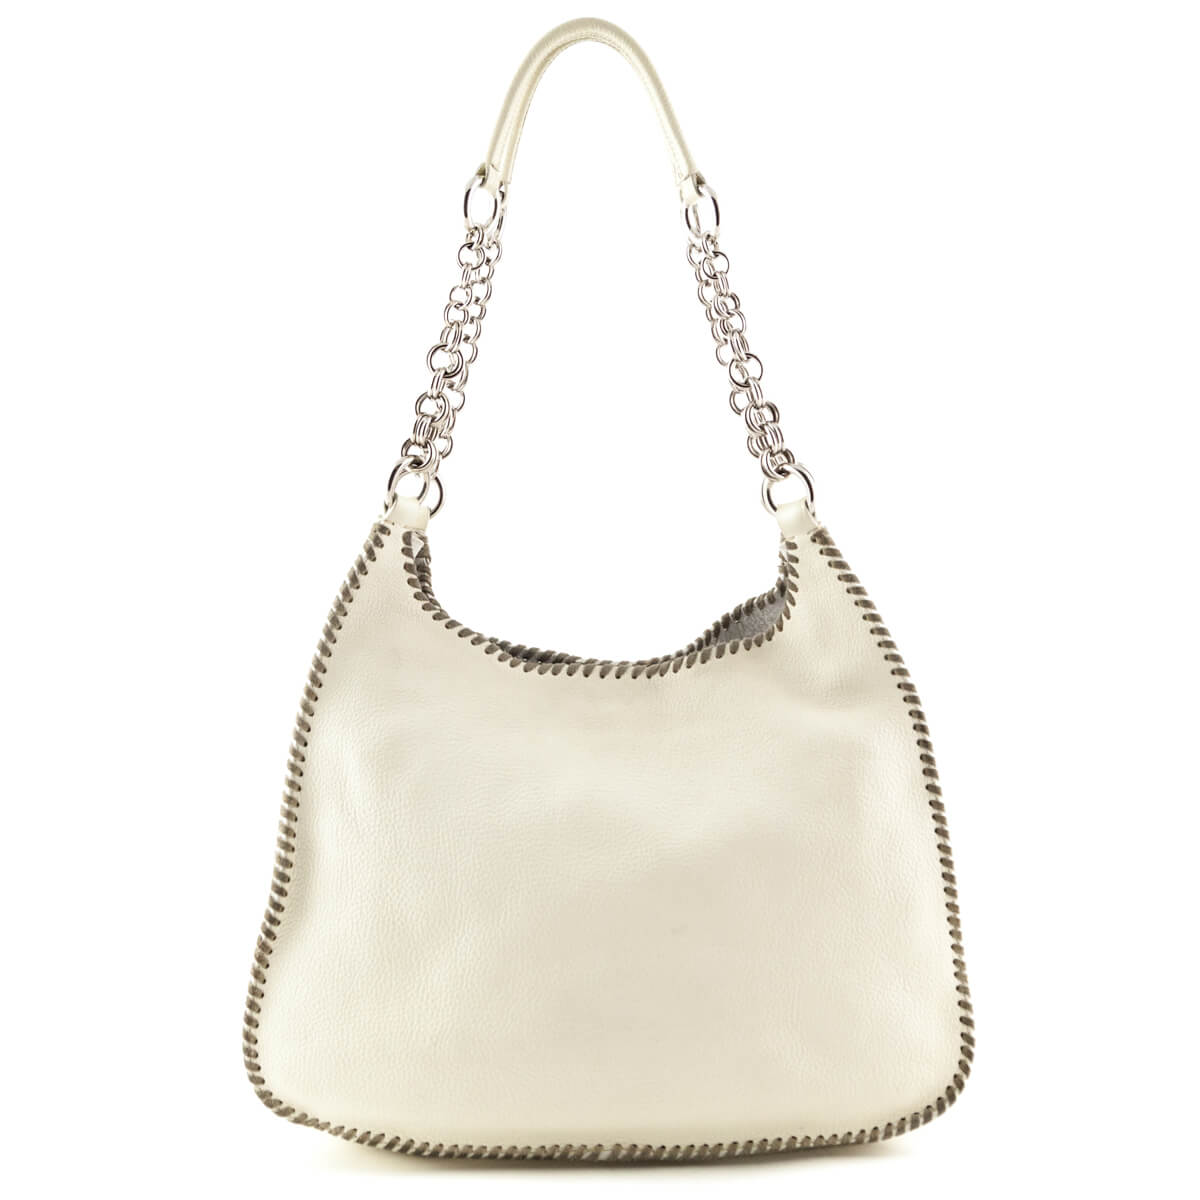 b416389b6e46 ... Prada Cream Vitello Daino Whipstich Shoulder Bag - LOVE that BAG -  Preowned Authentic Designer Handbags ...